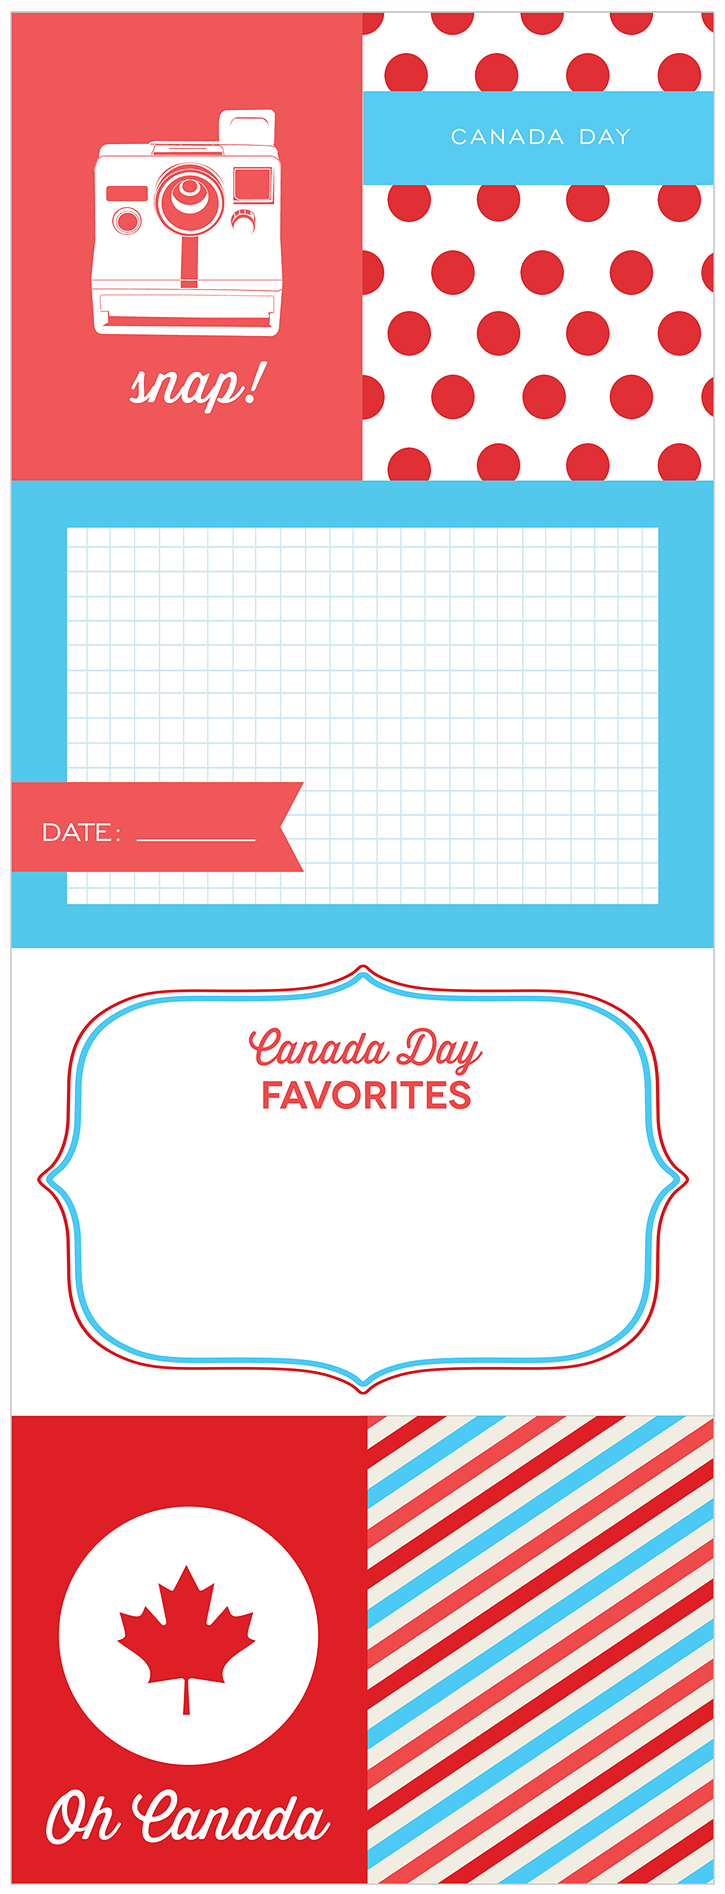 Canada Day Journaling and Filler Cards